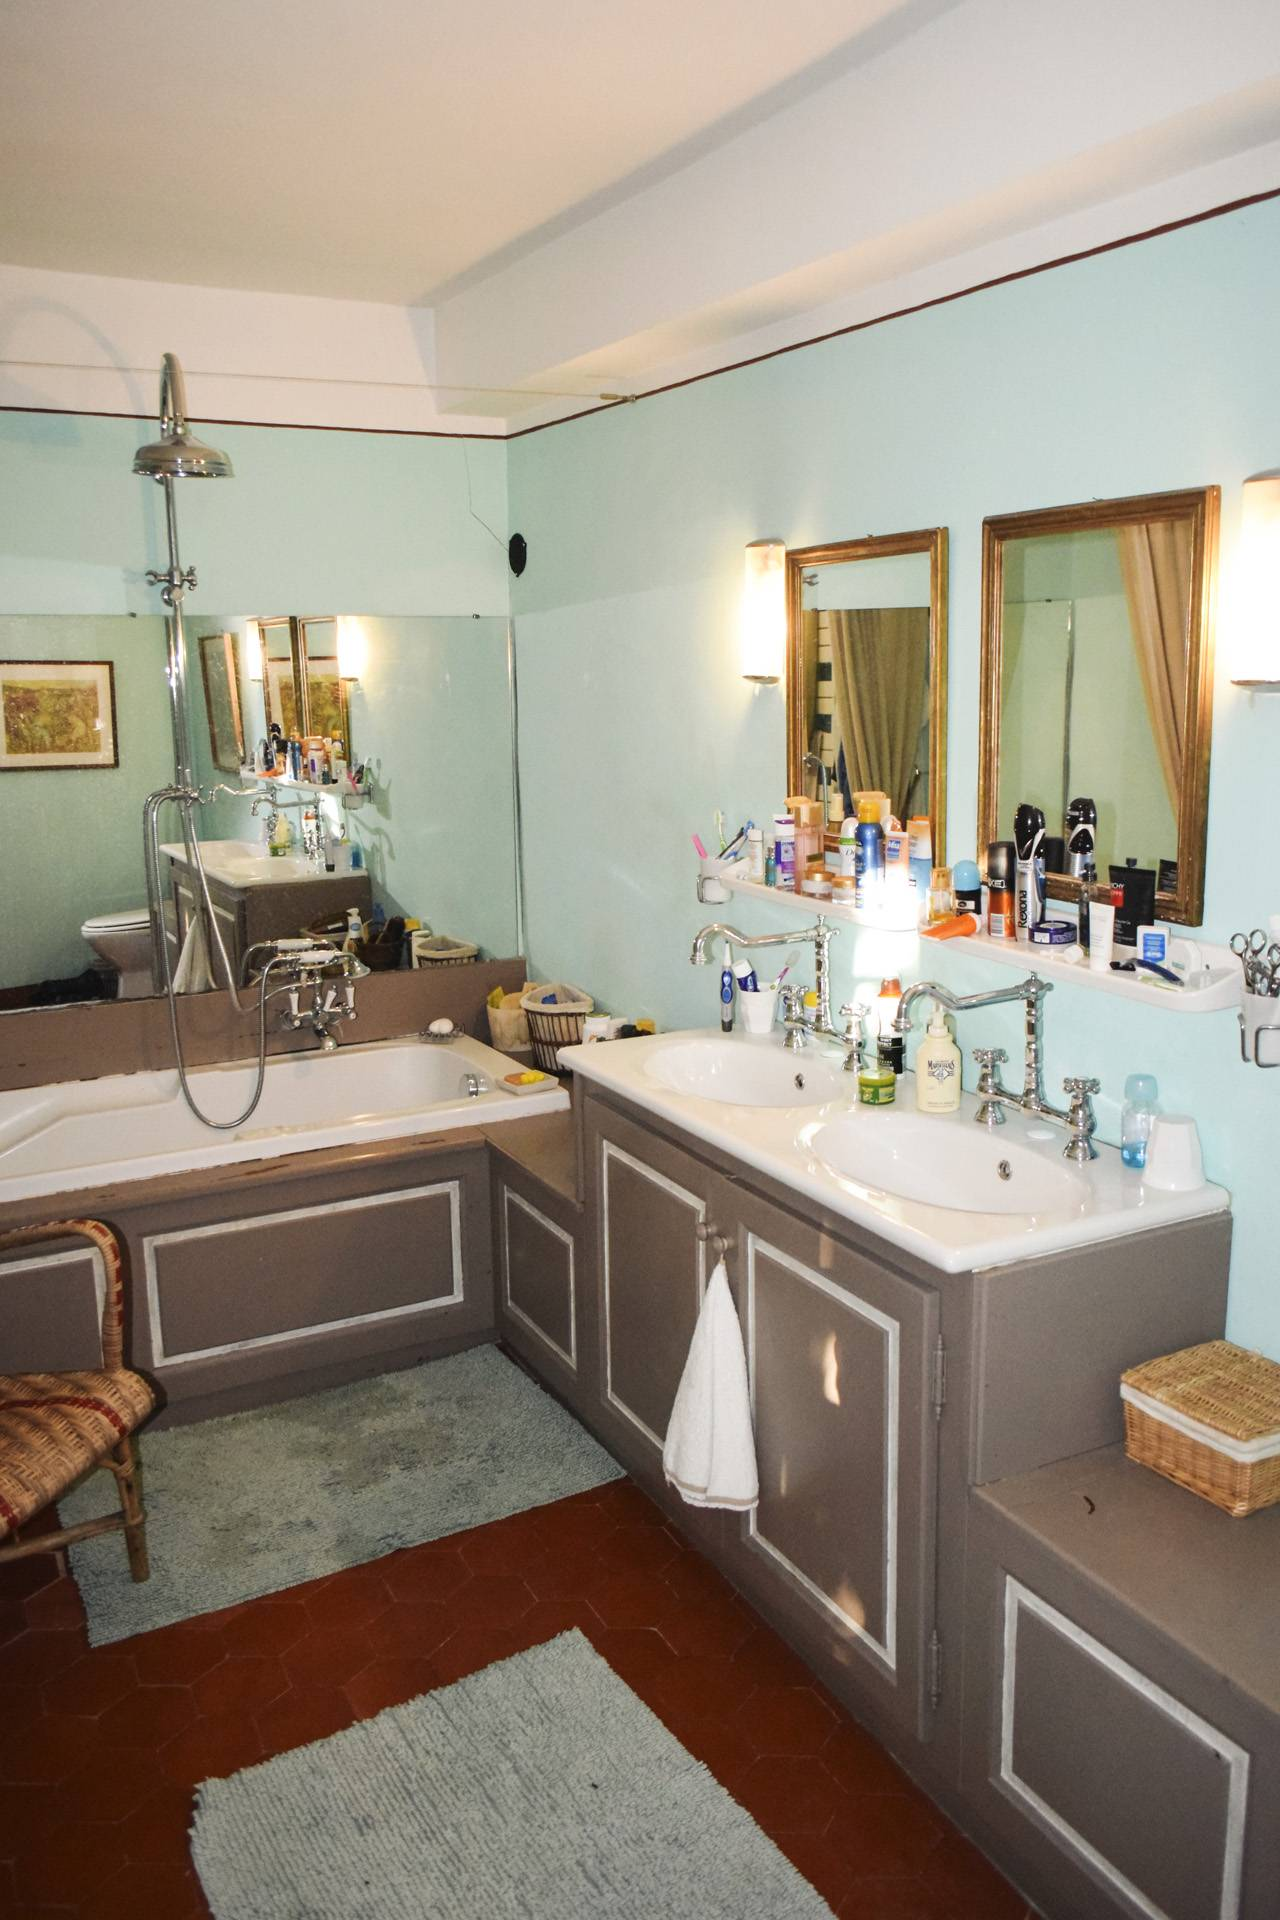 bathroom ensuite renovated country house on 8 ha, swimming pool, caretaker's house, aups var, provence